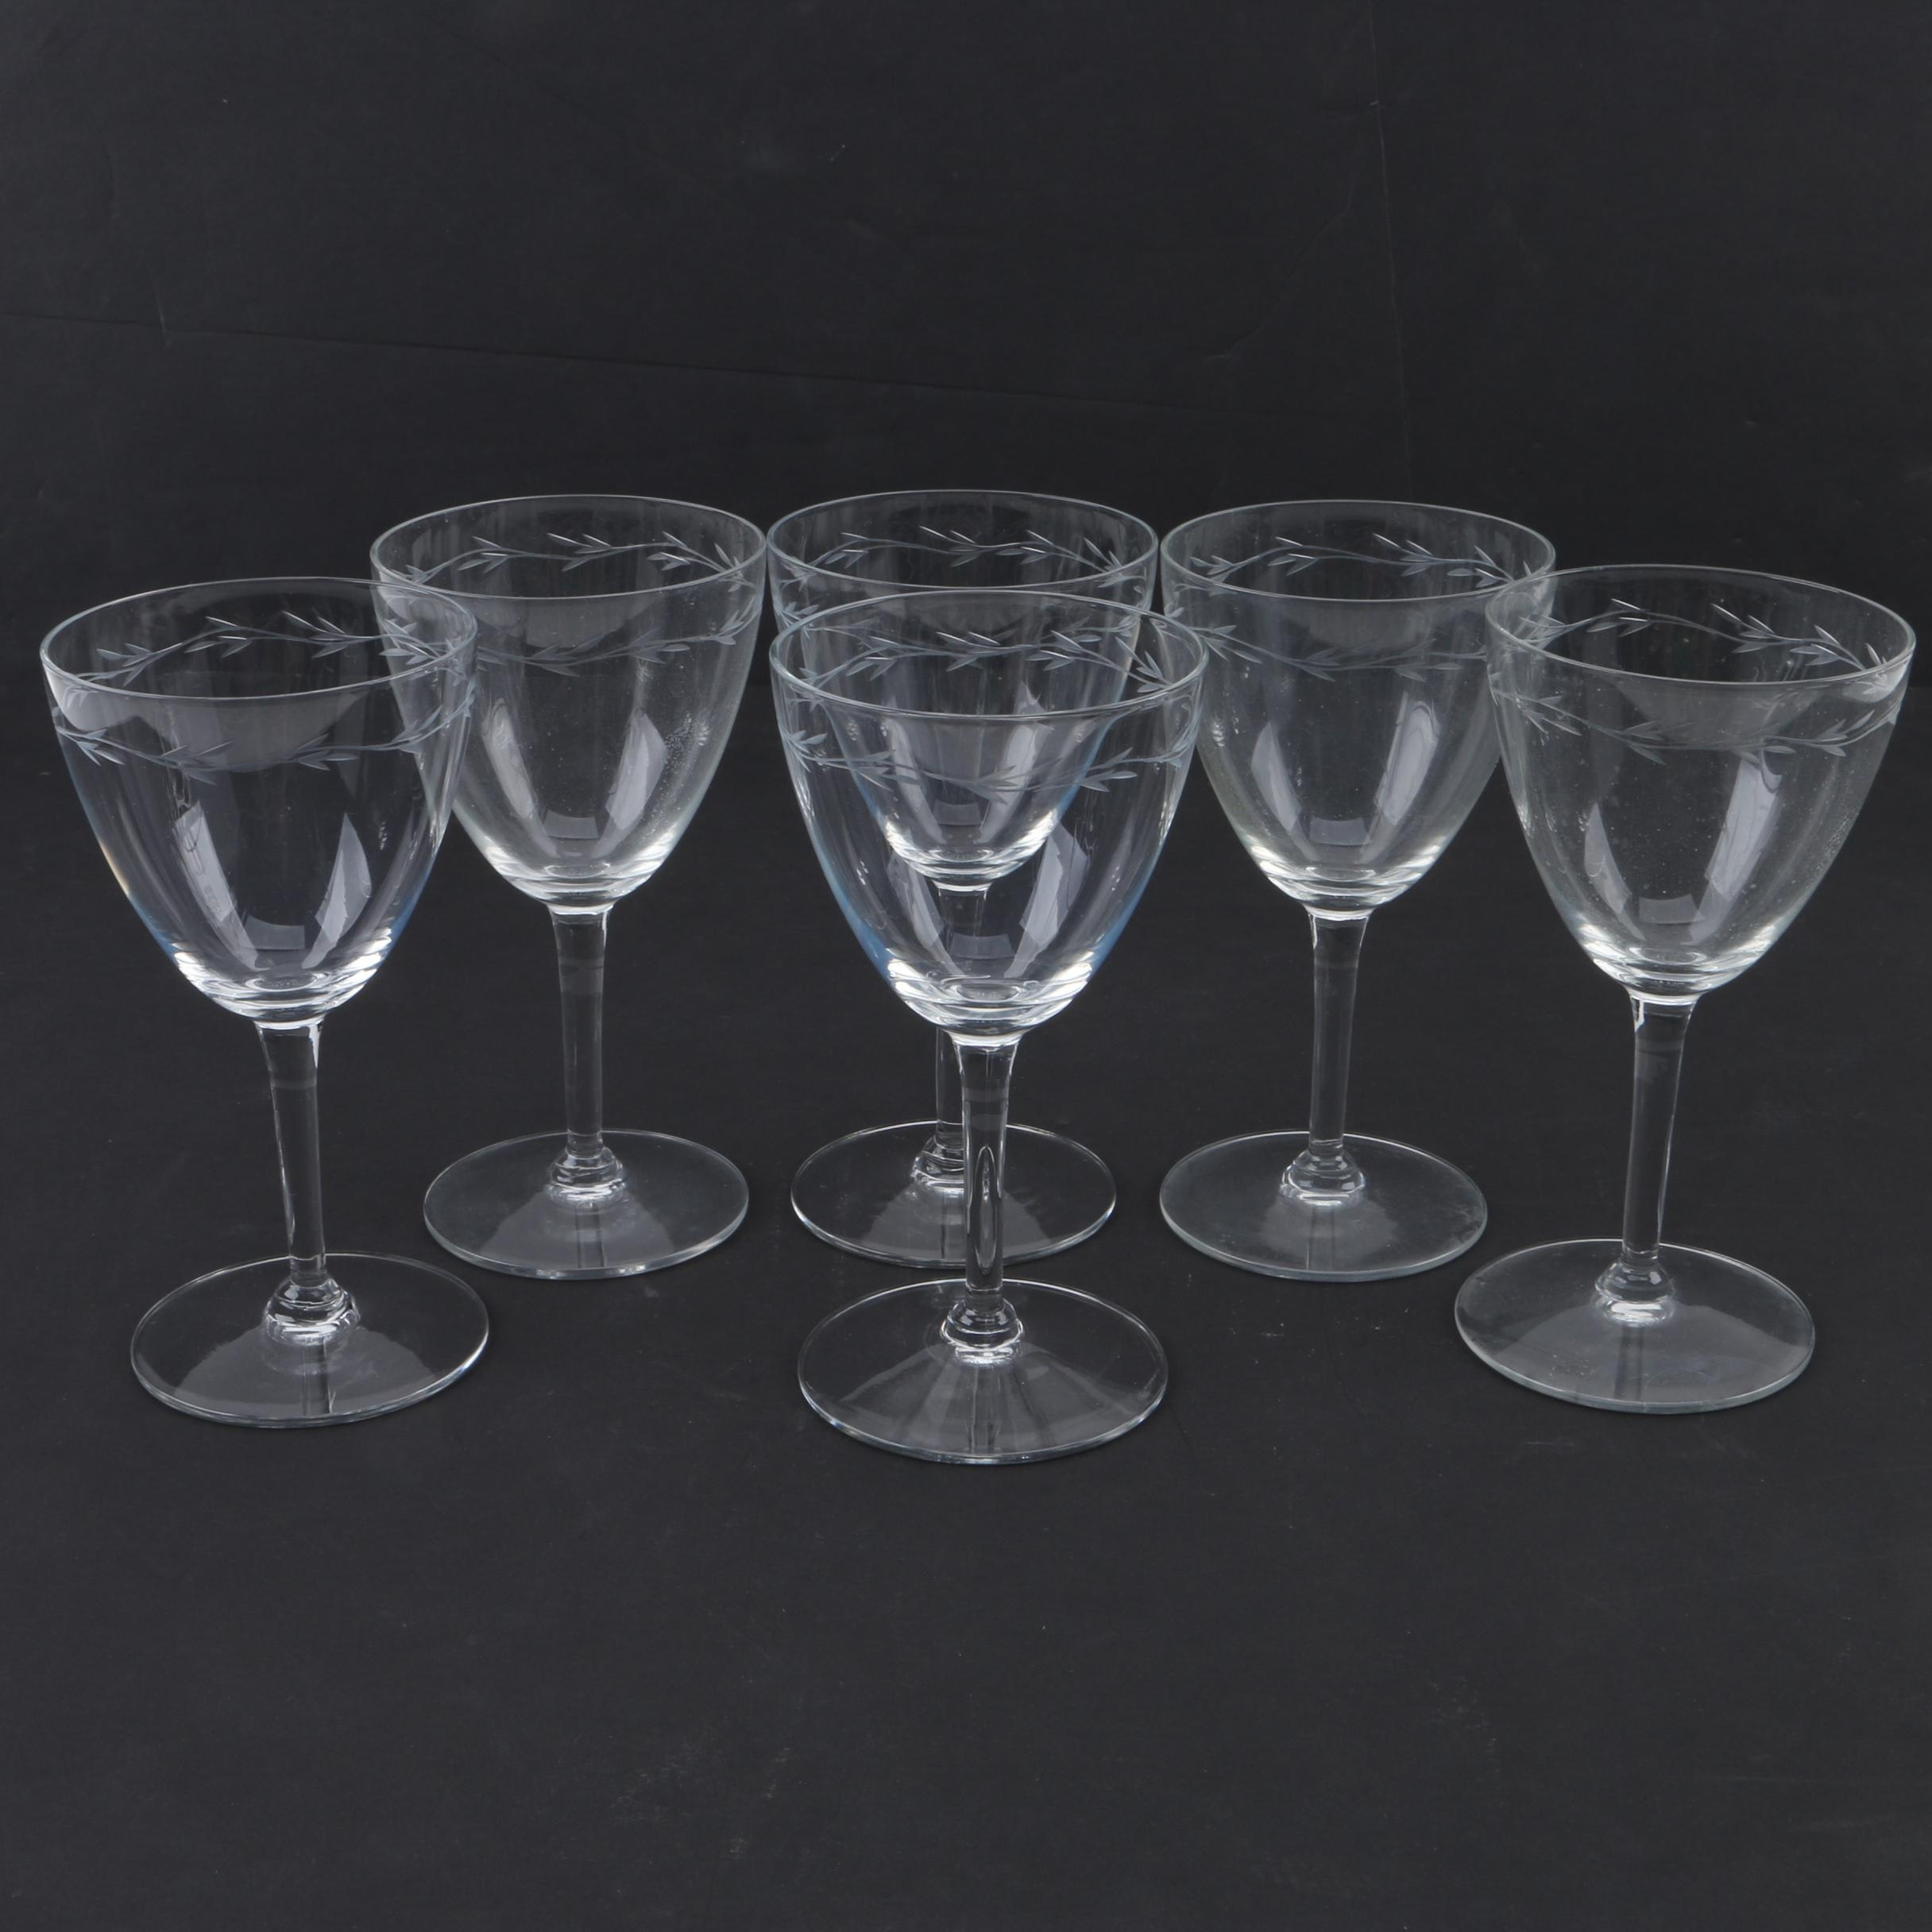 Laurel Wreath Motif Etched Glass Wine Glasses